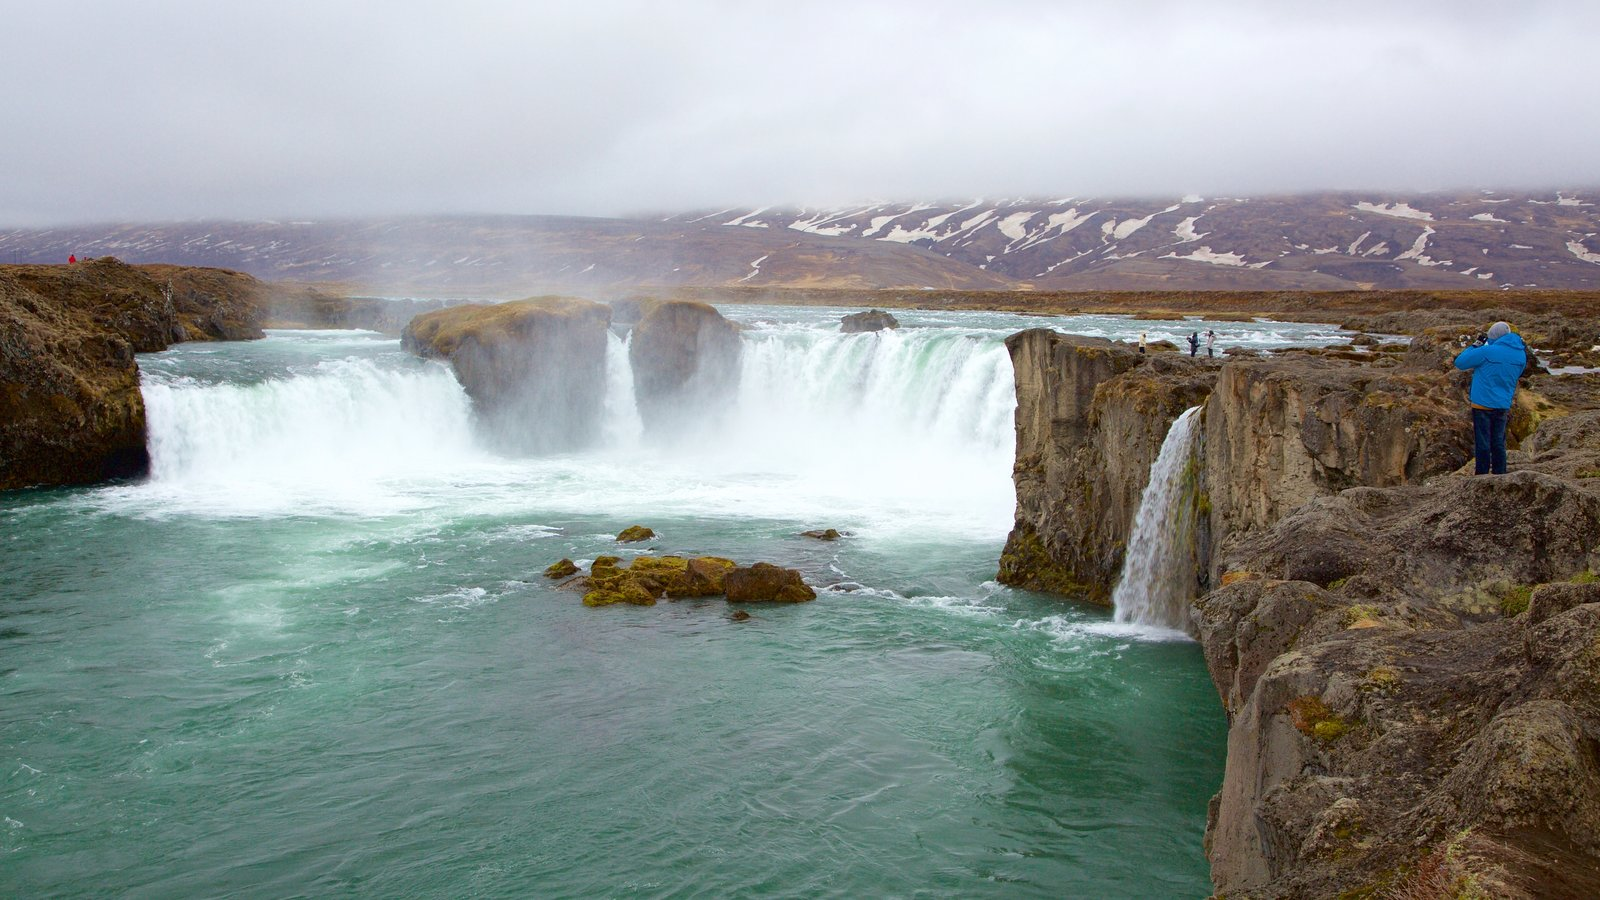 Godafoss showing a waterfall and mist or fog as well as an individual male